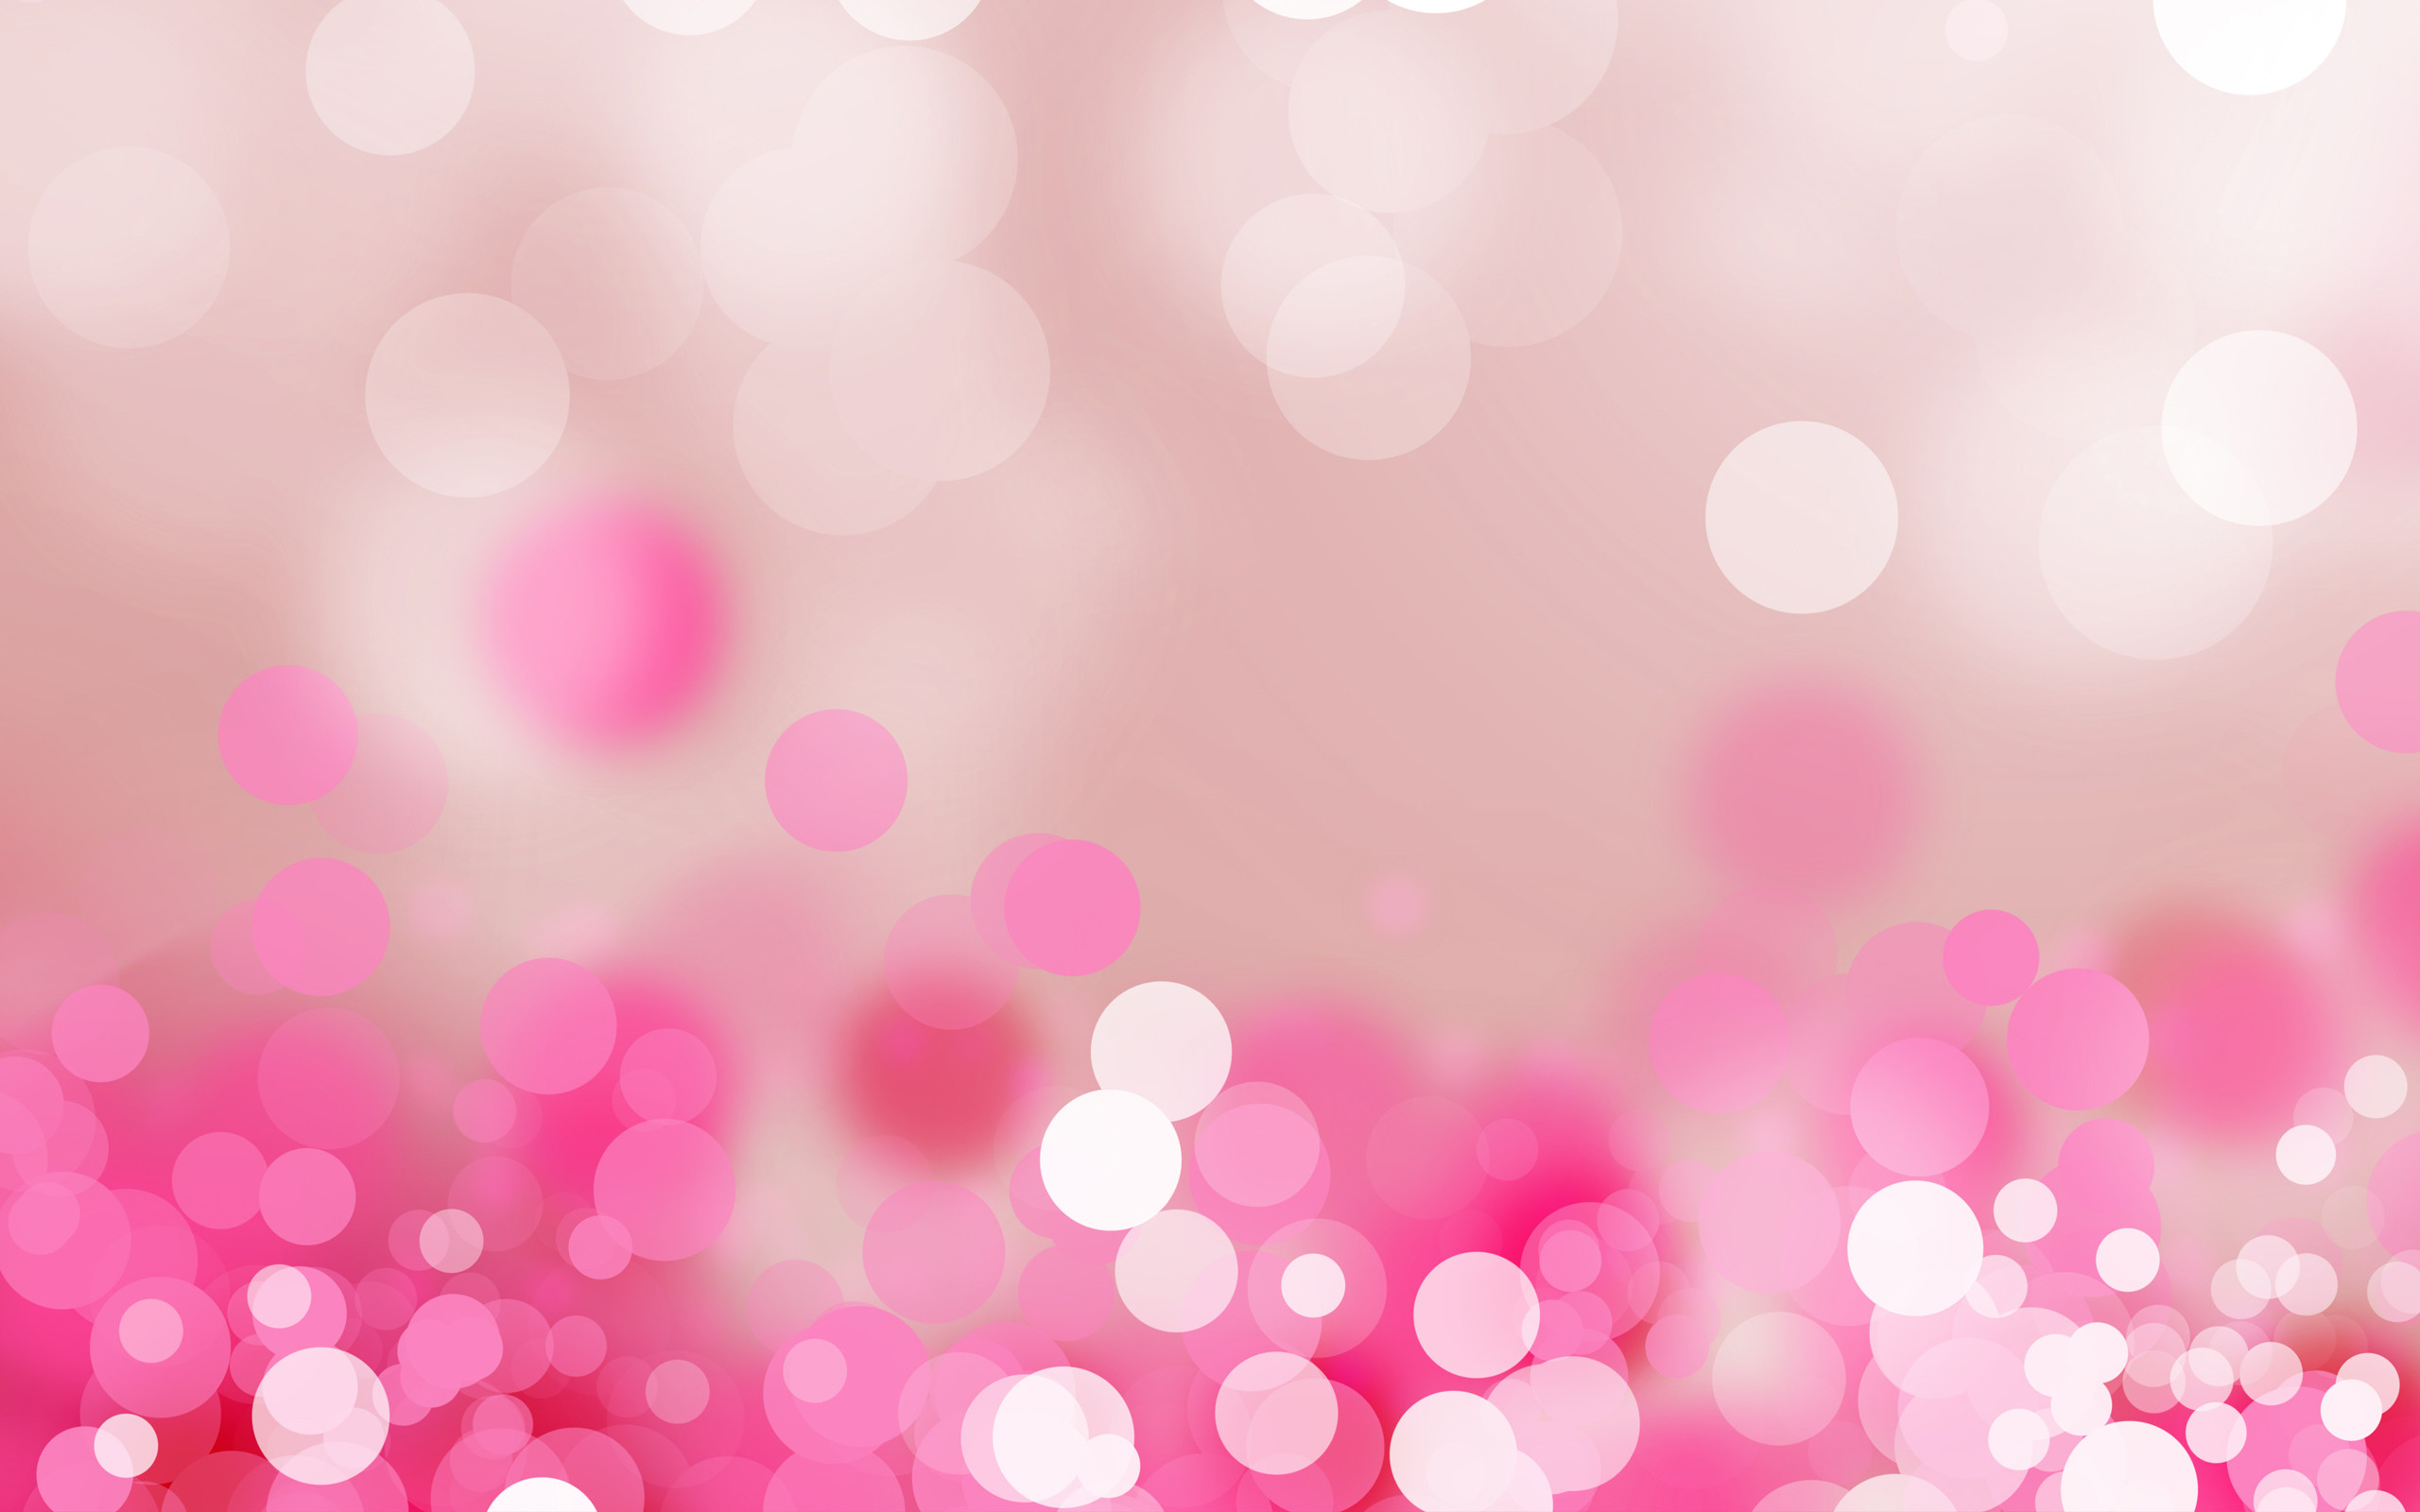 Pink Bubble Wallpaper 67 images